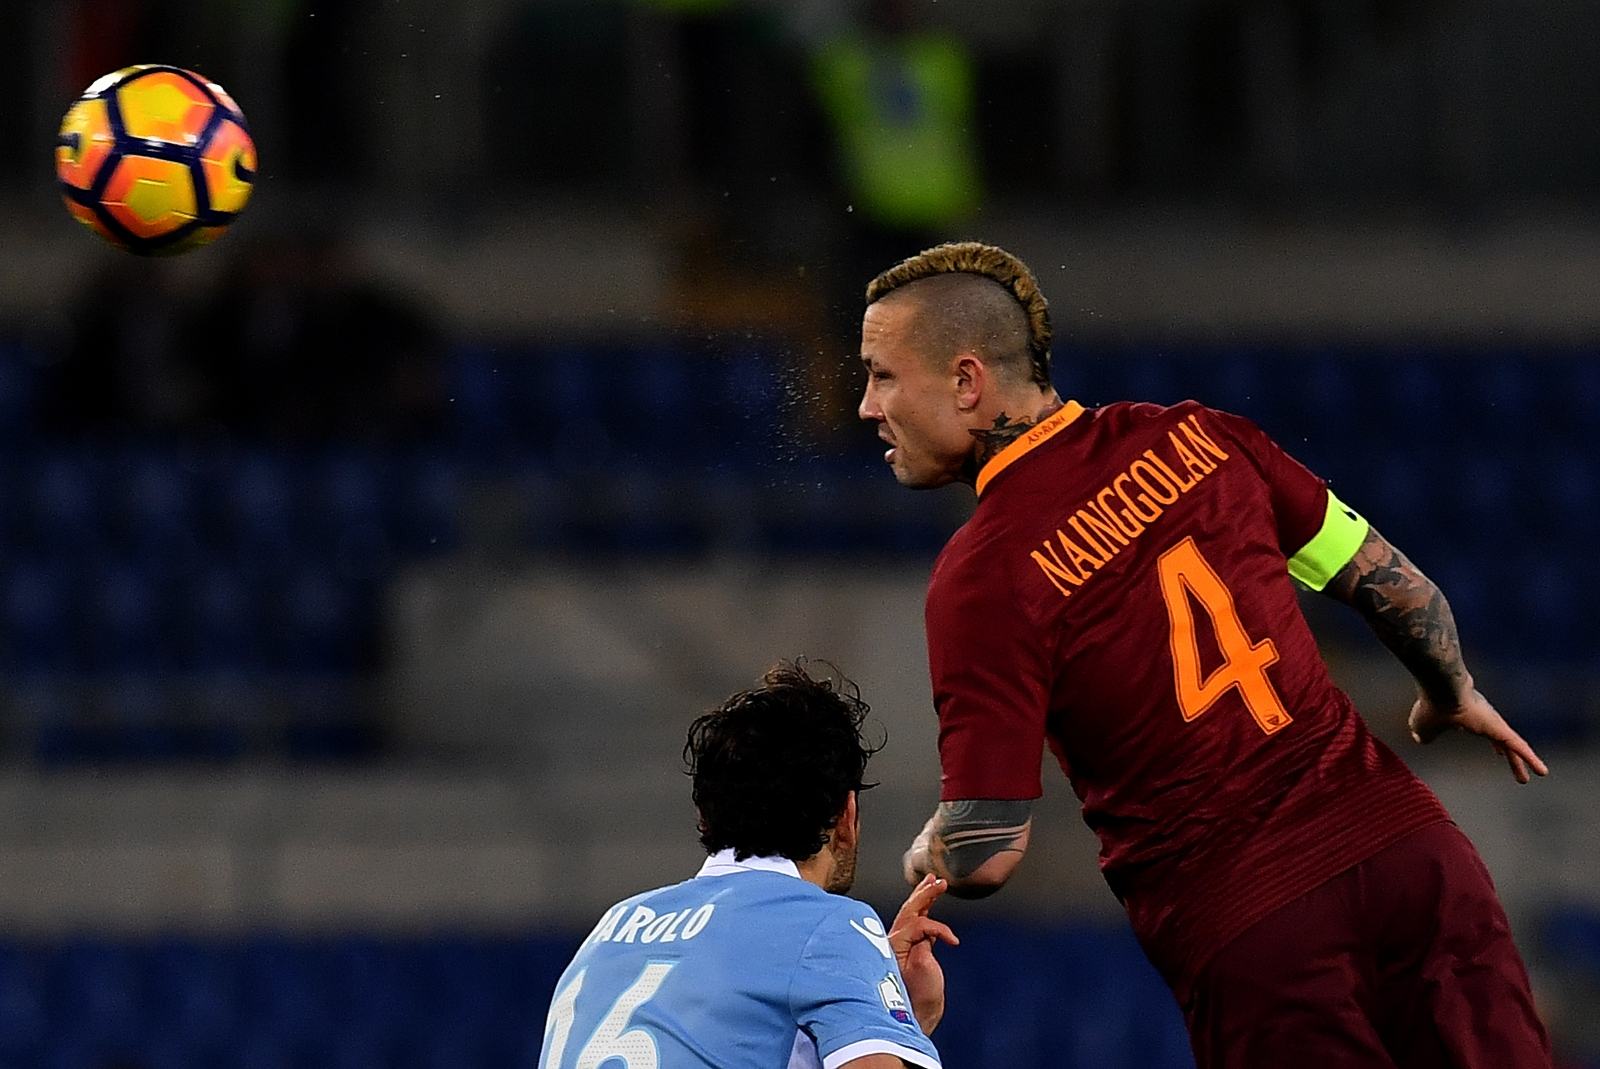 Radja Nainggolan: Roma midfielder signs new deal with Italian club